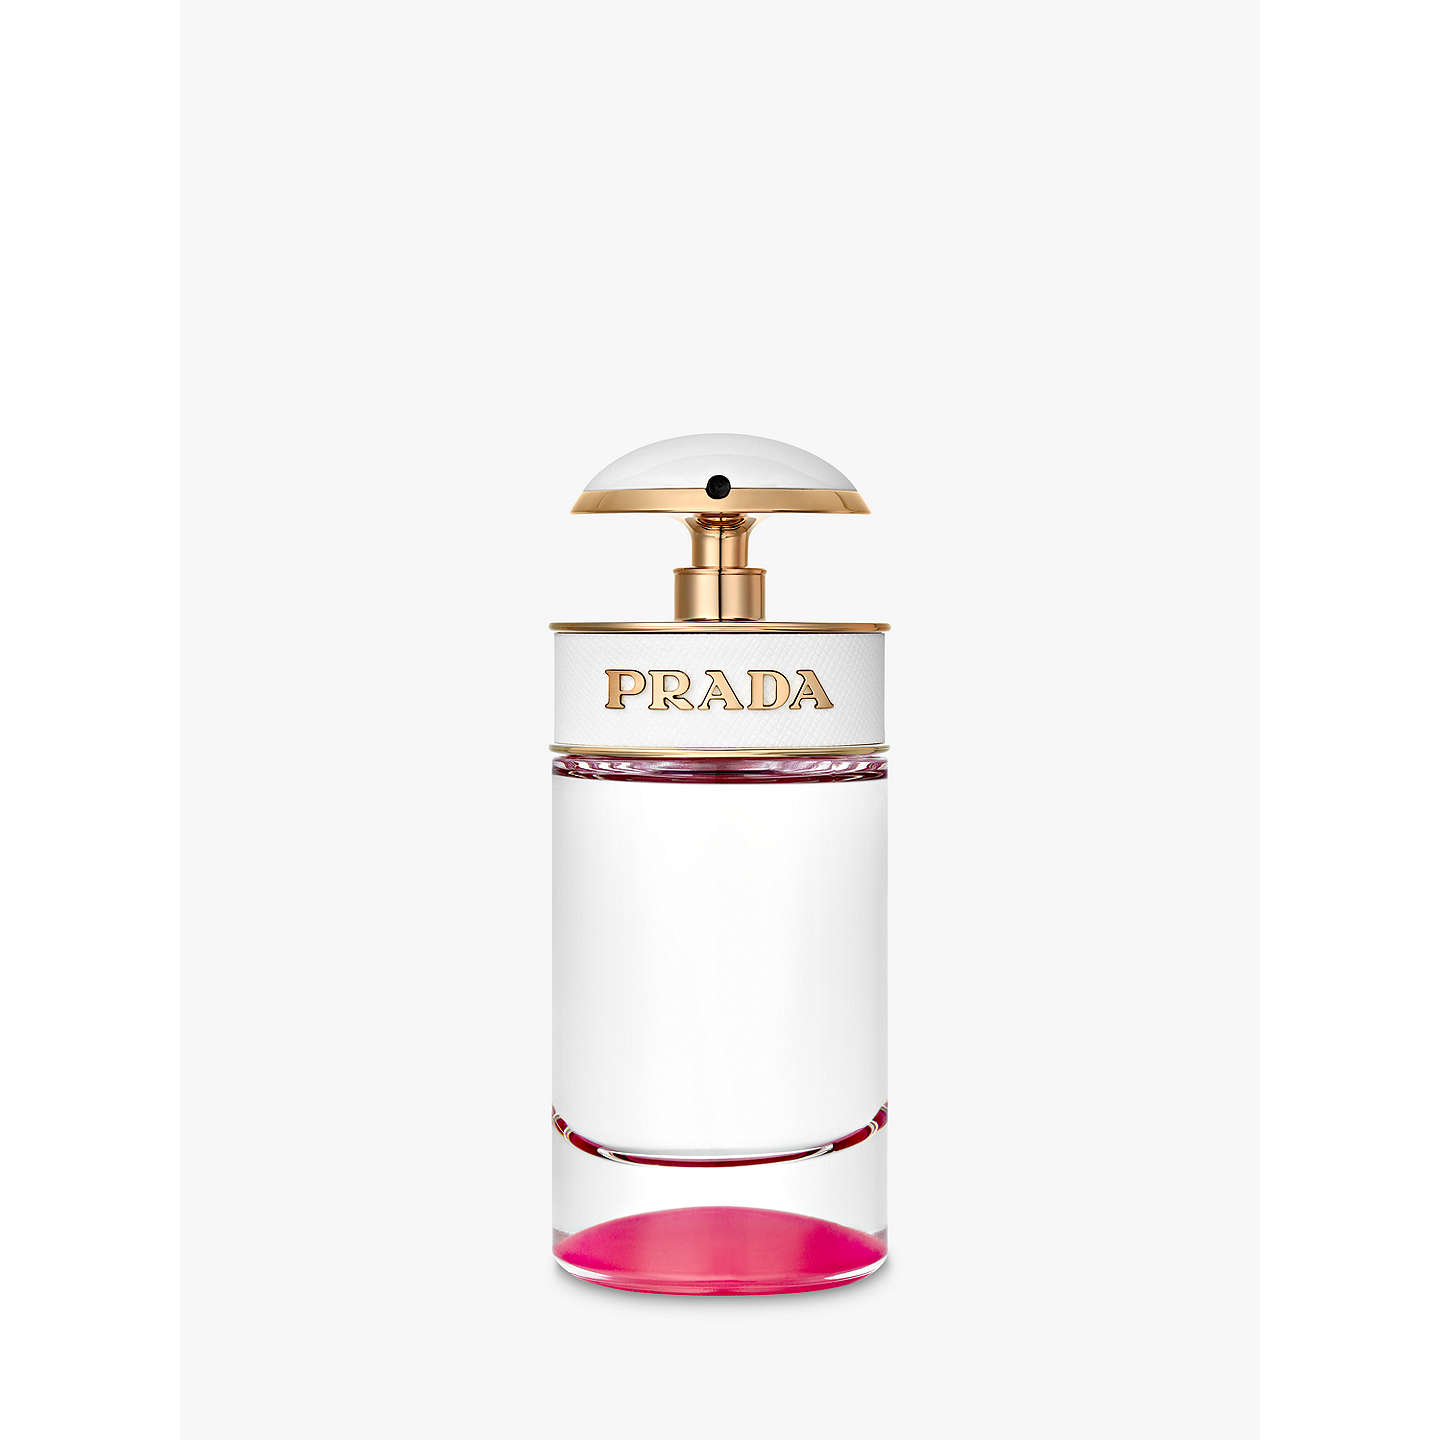 BuyPrada Candy Kiss Eau de Parfum, 50ml Online at johnlewis.com